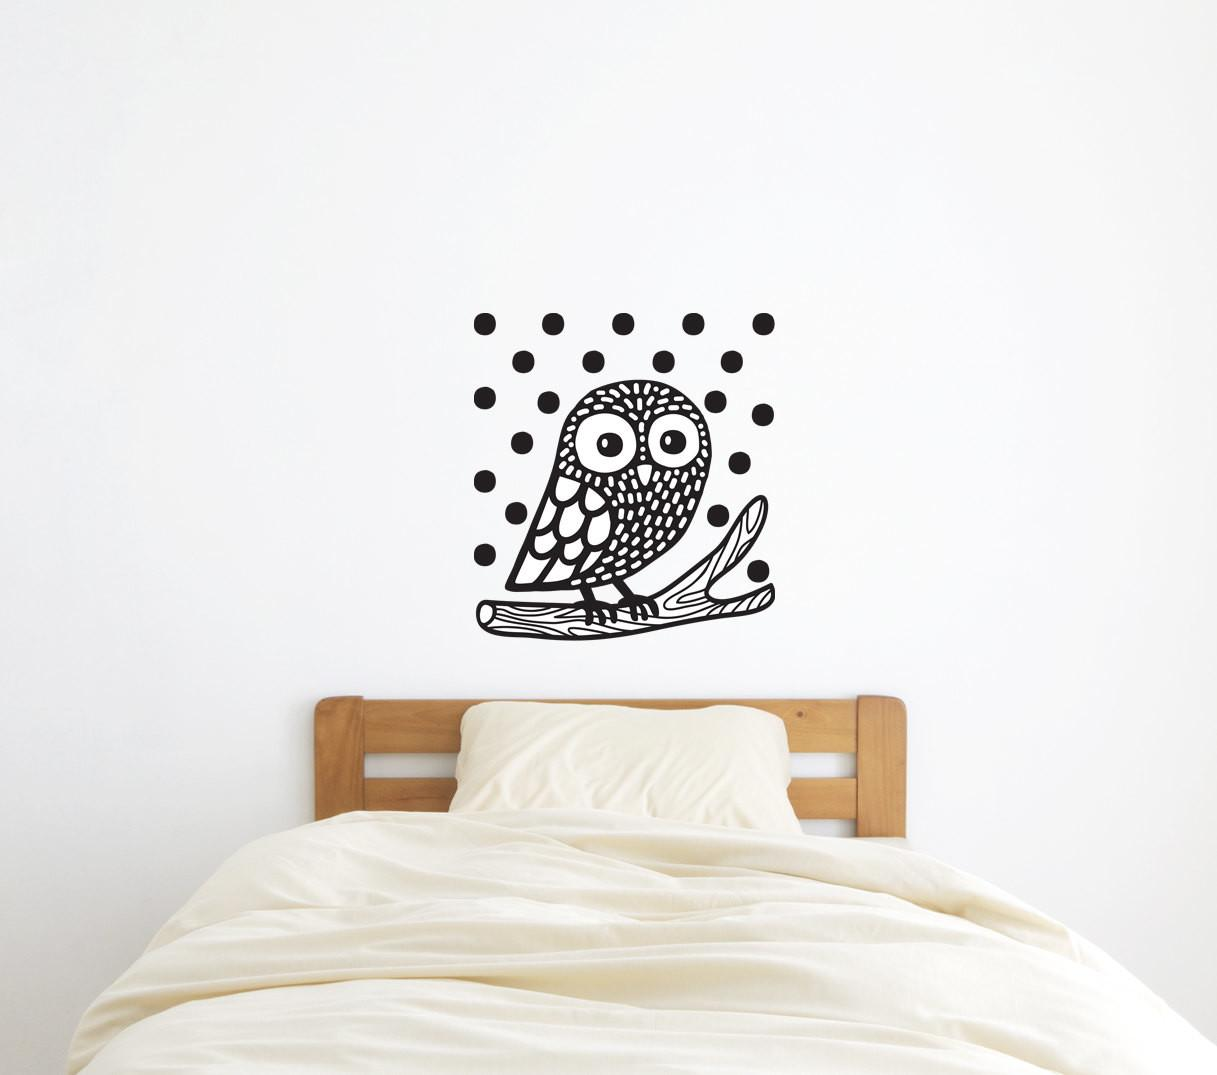 Owl Wall Decal Sticker Home Decor Wild